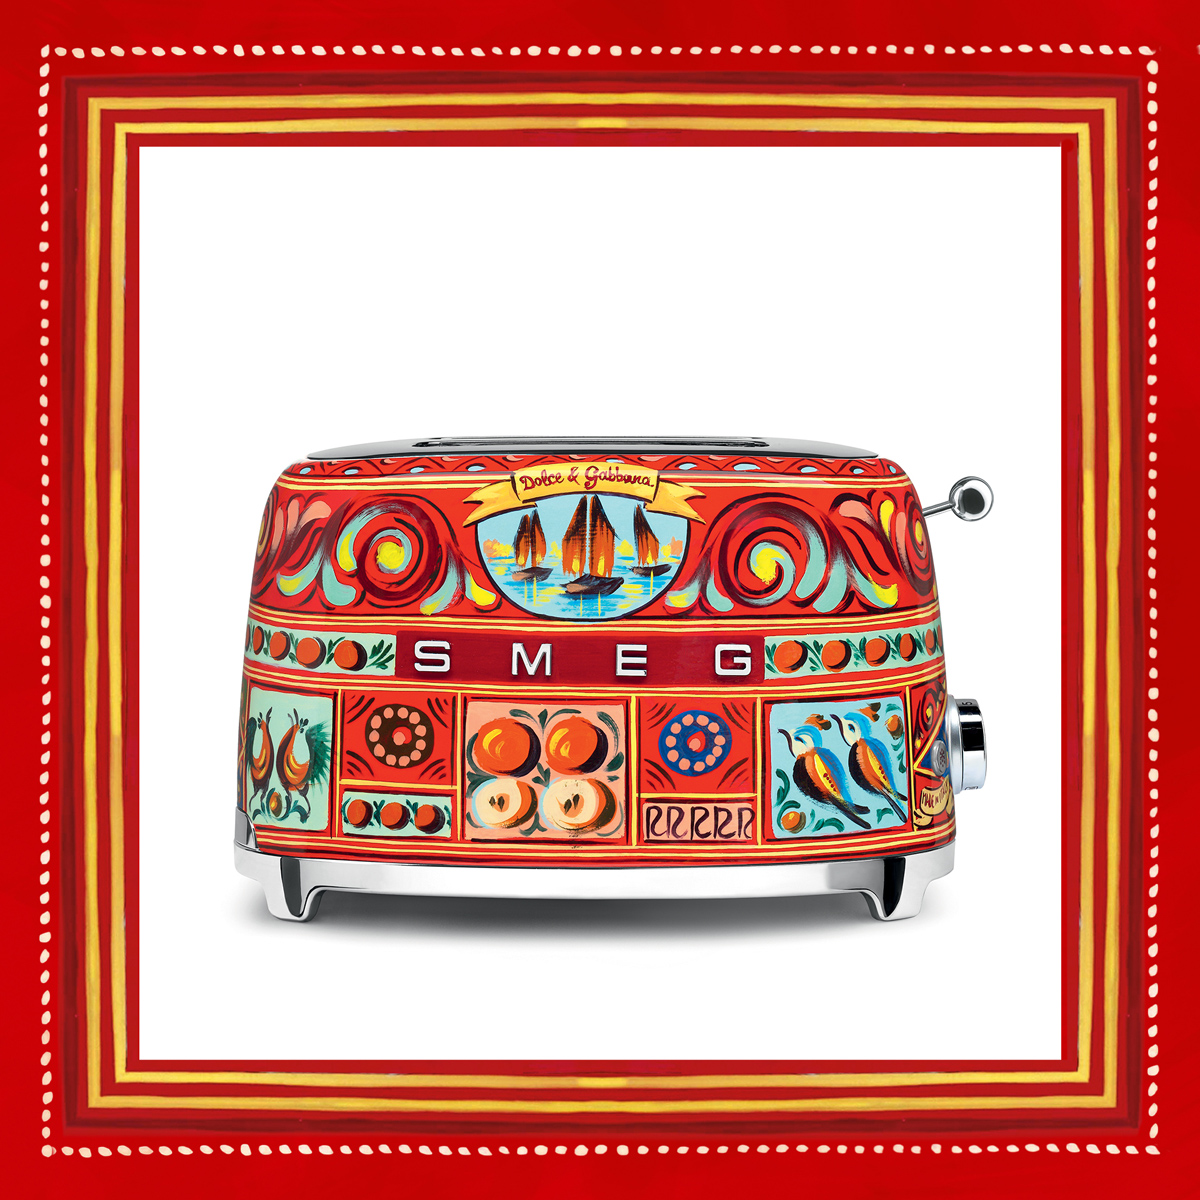 Dolce & Gabbana and Smeg collaboration Toaster framed